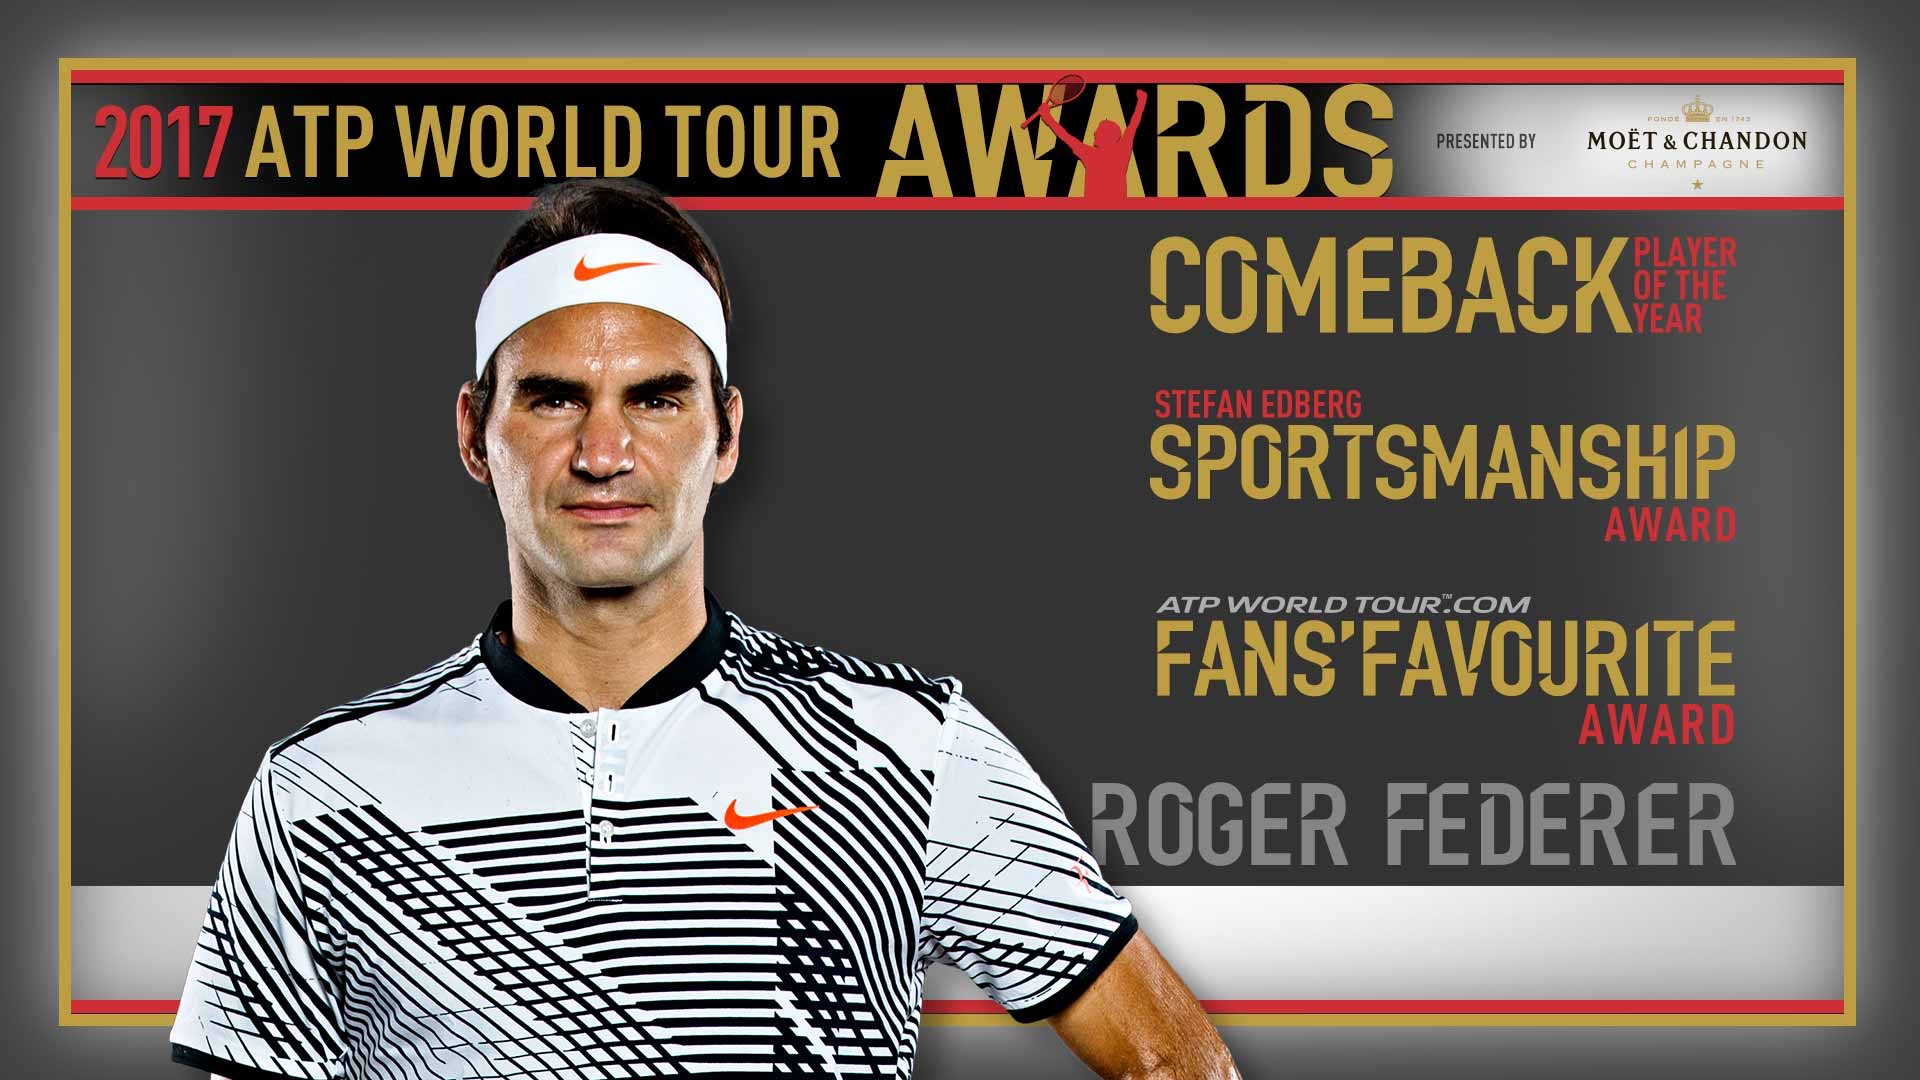 Roger Federer 2017 ATP World Tour Awards